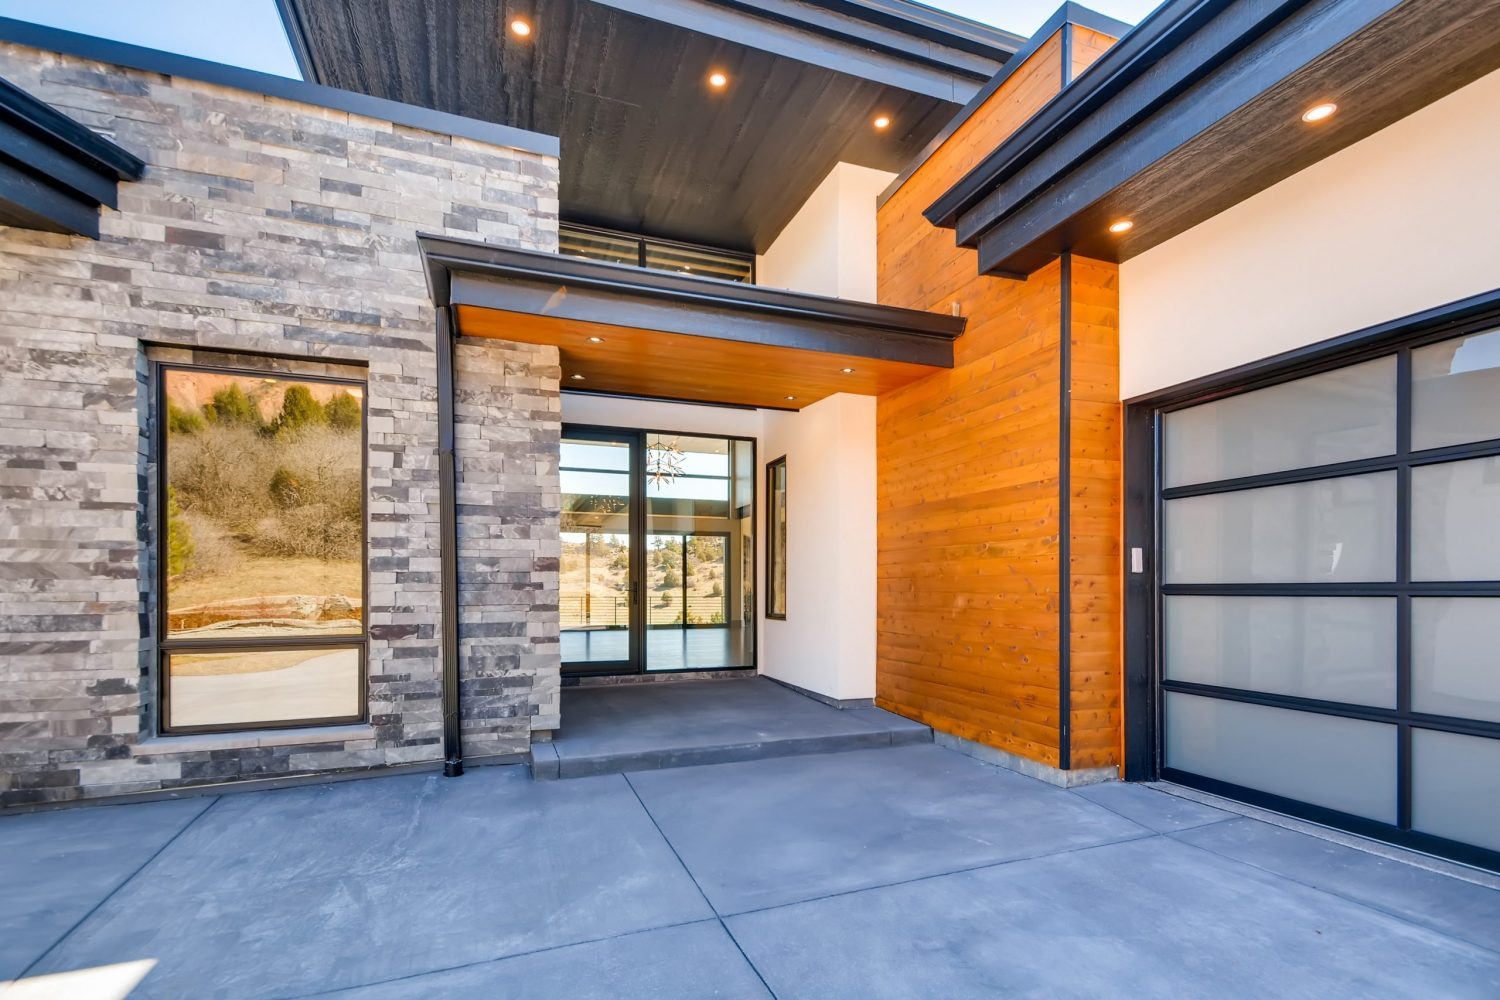 Modern home front entry designed by Godden Sudik Architects that features cantilevered flat roof and wood accents